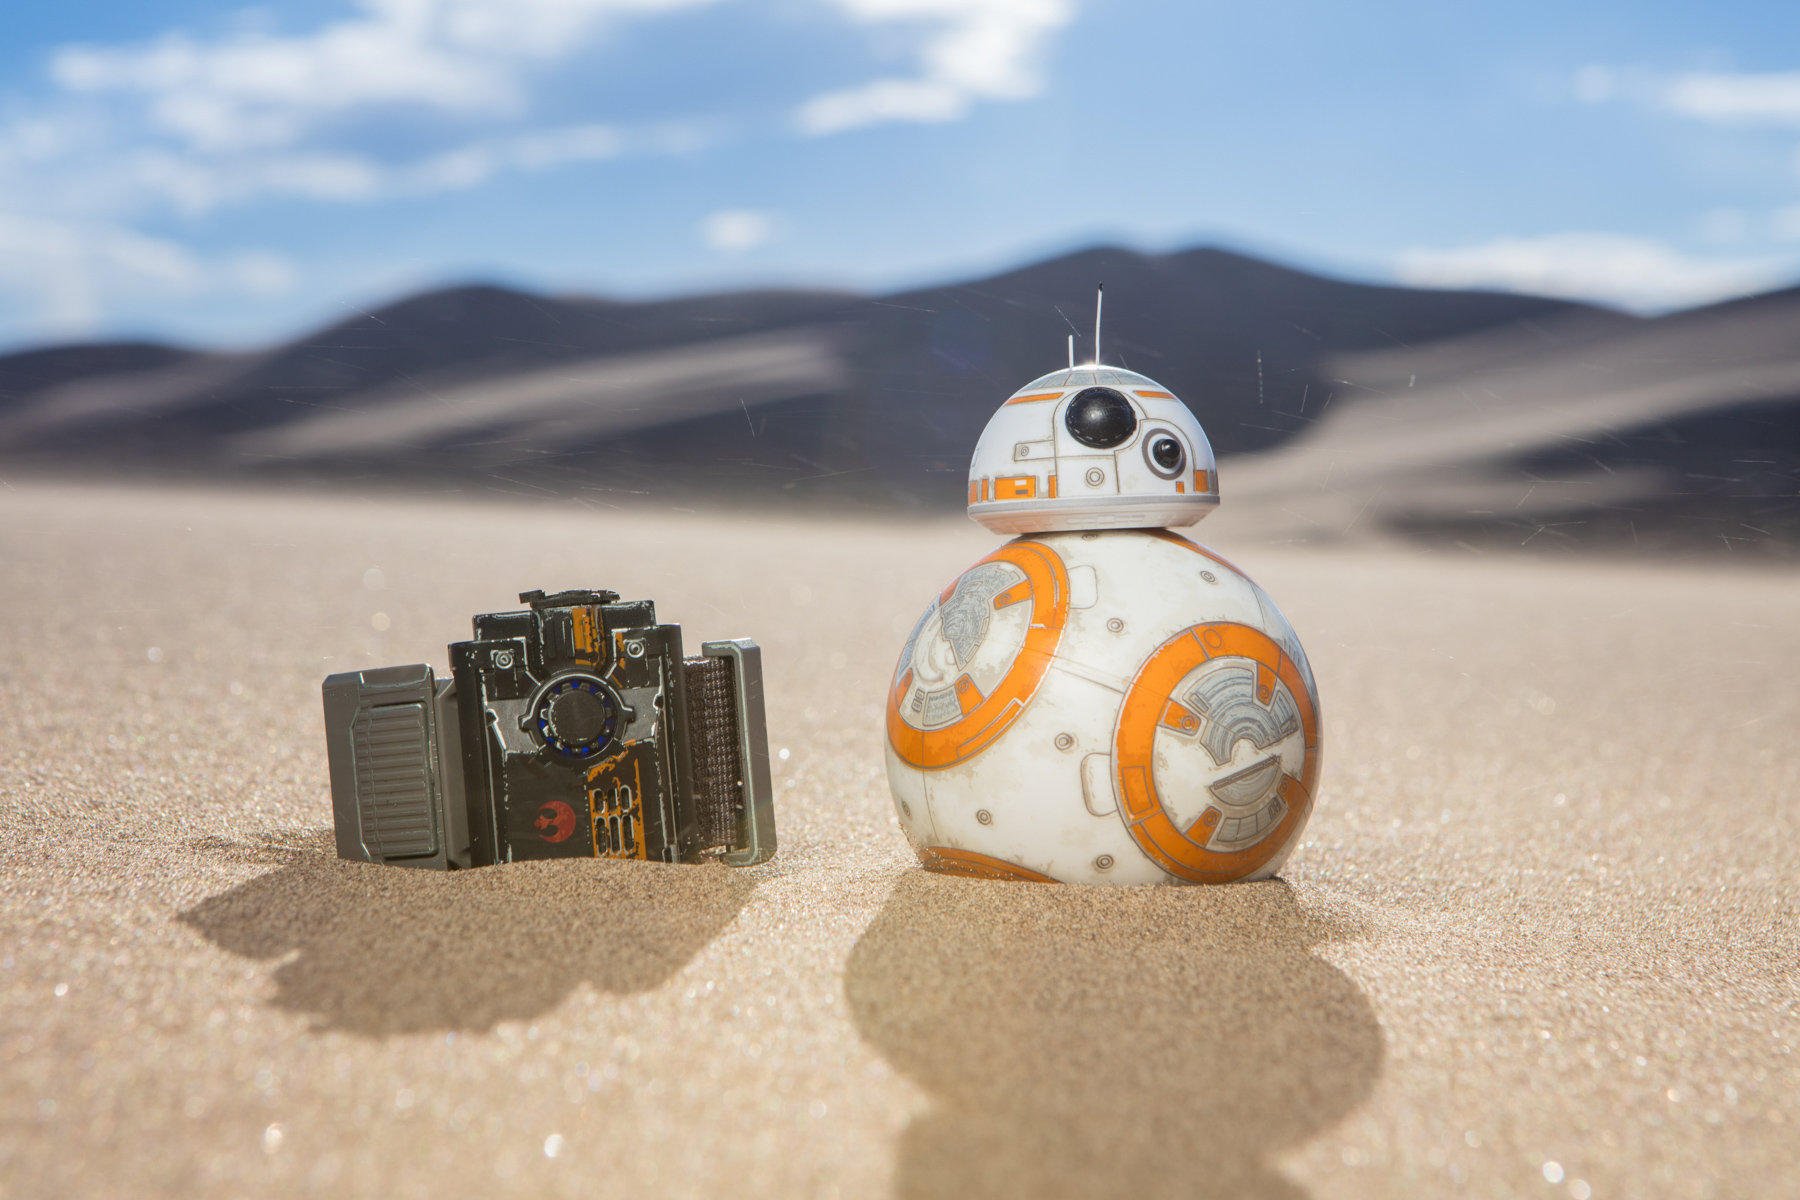 Sphero ForceBand and BB-8 product photo on sand dunes in Colorado.